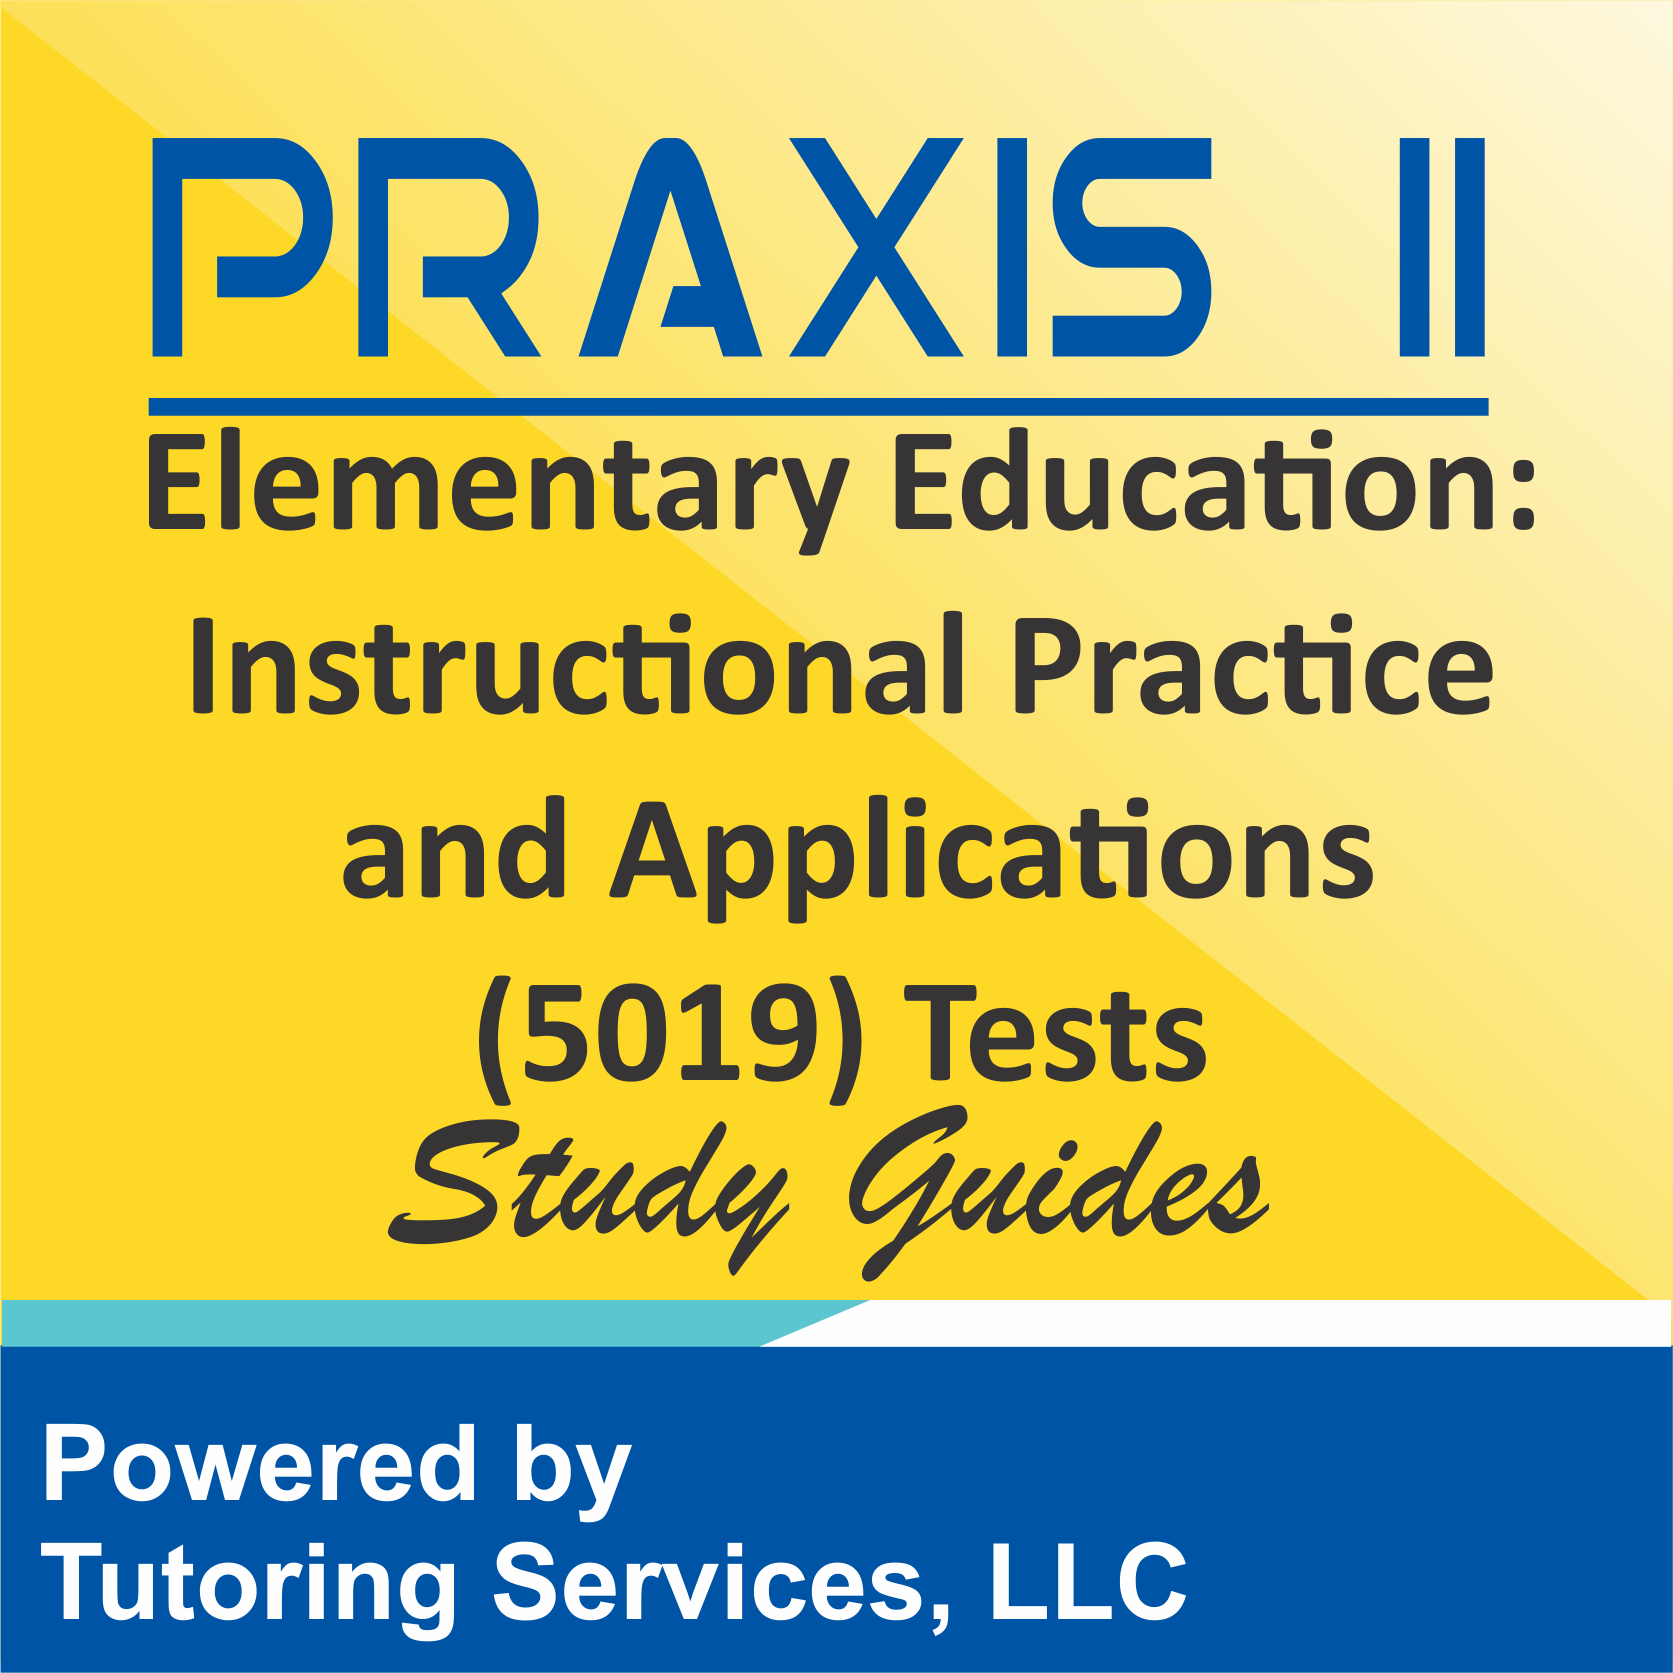 Praxis II Elementary Education: Instructional Practice and Applications (5019) Examination Format